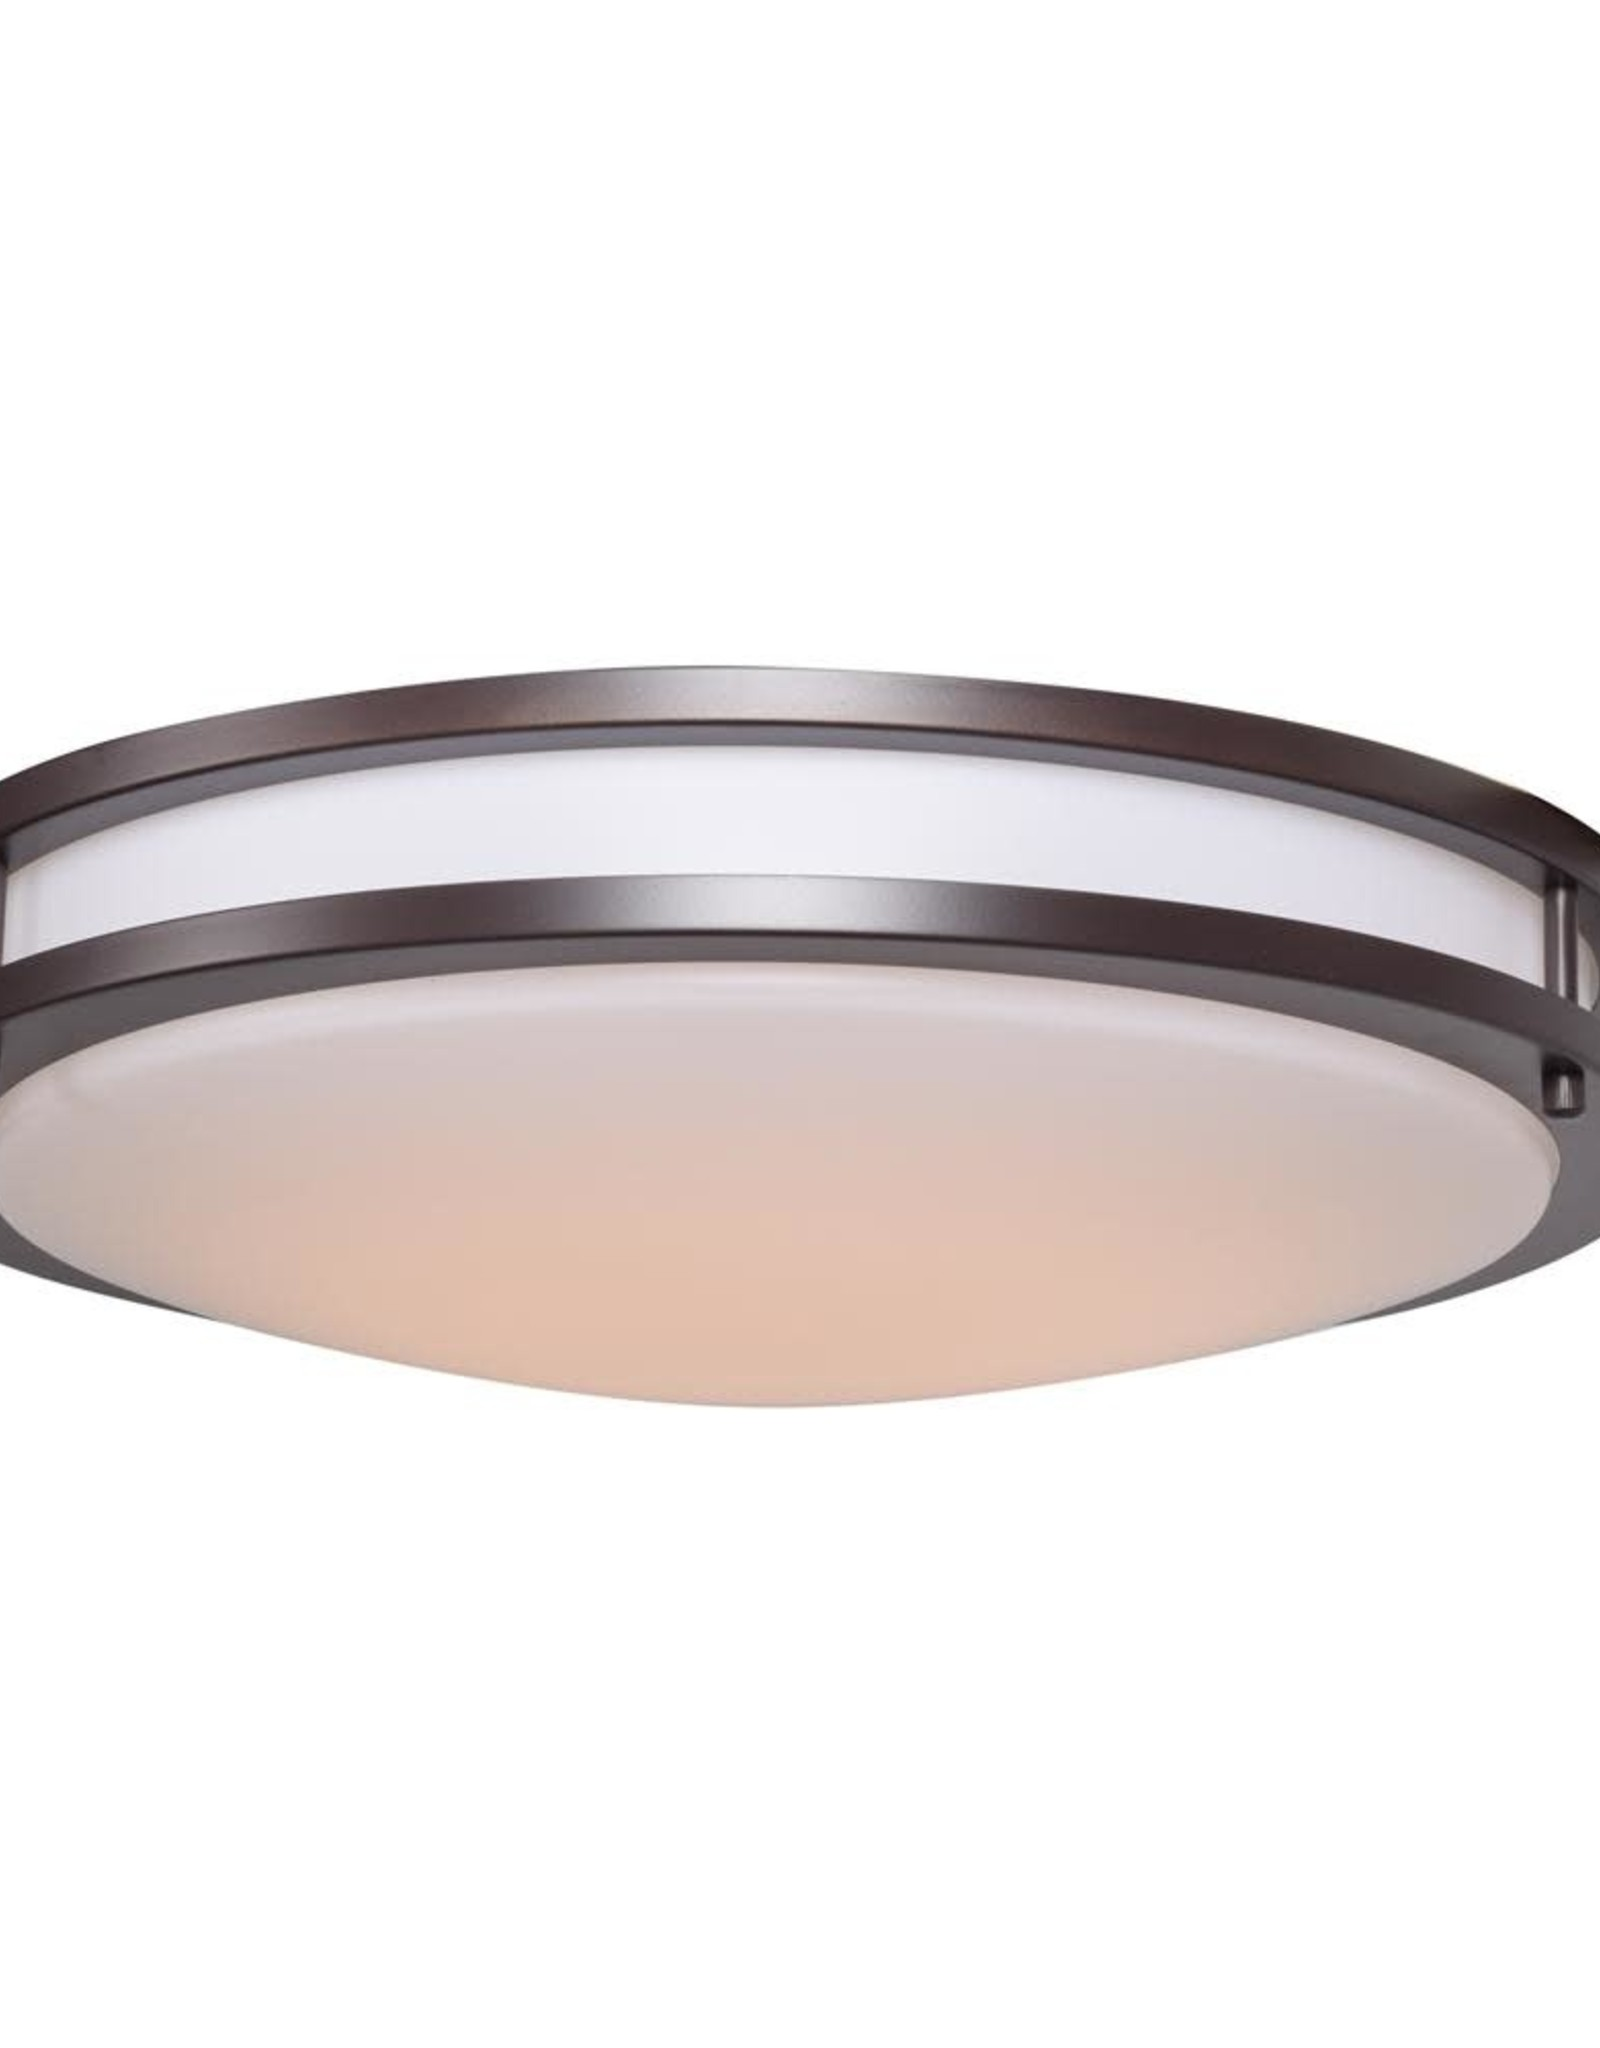 Solero 6-Light Bronze Flushmount Light with Acrylic Lens Diffuser